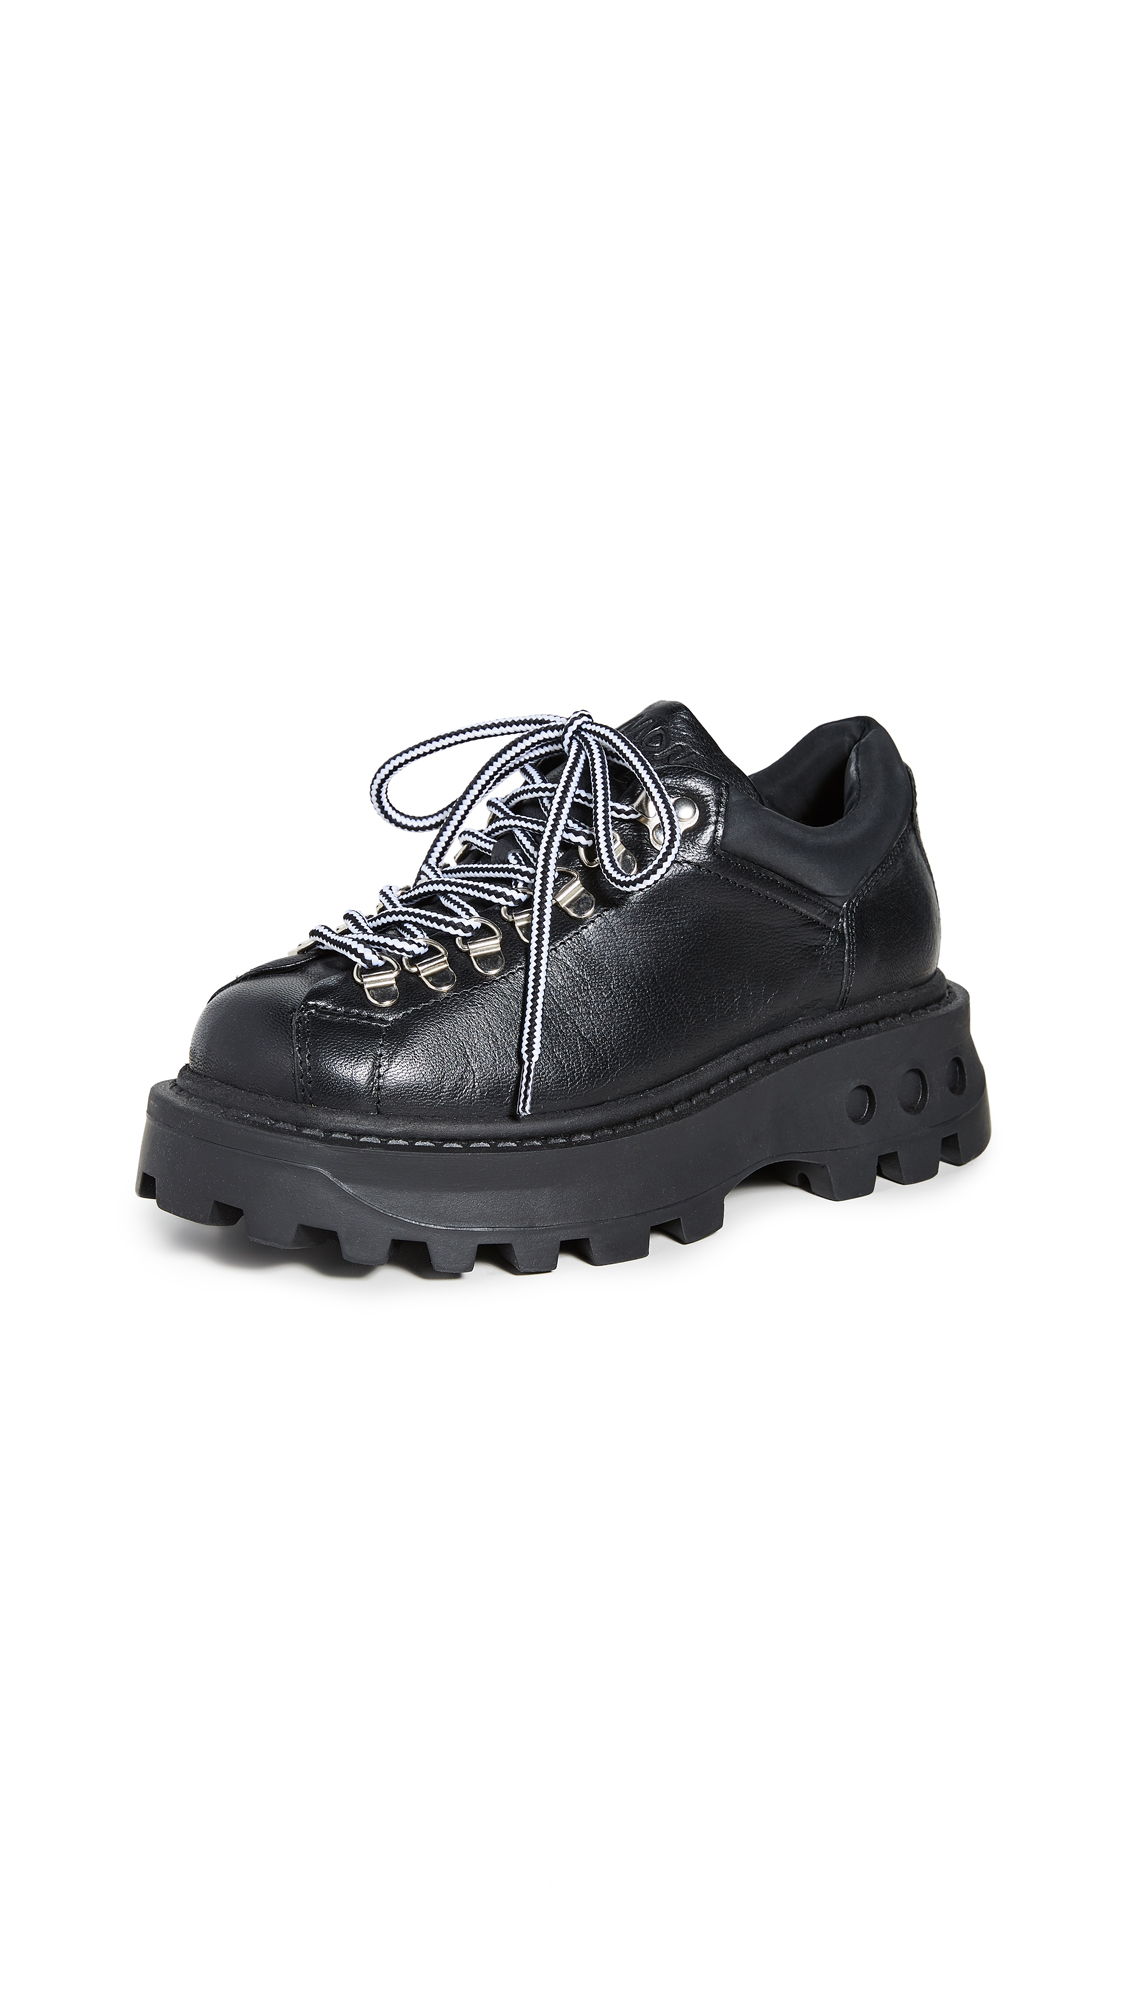 Simon Miller Low Tracker Boots - 60% Off Sale